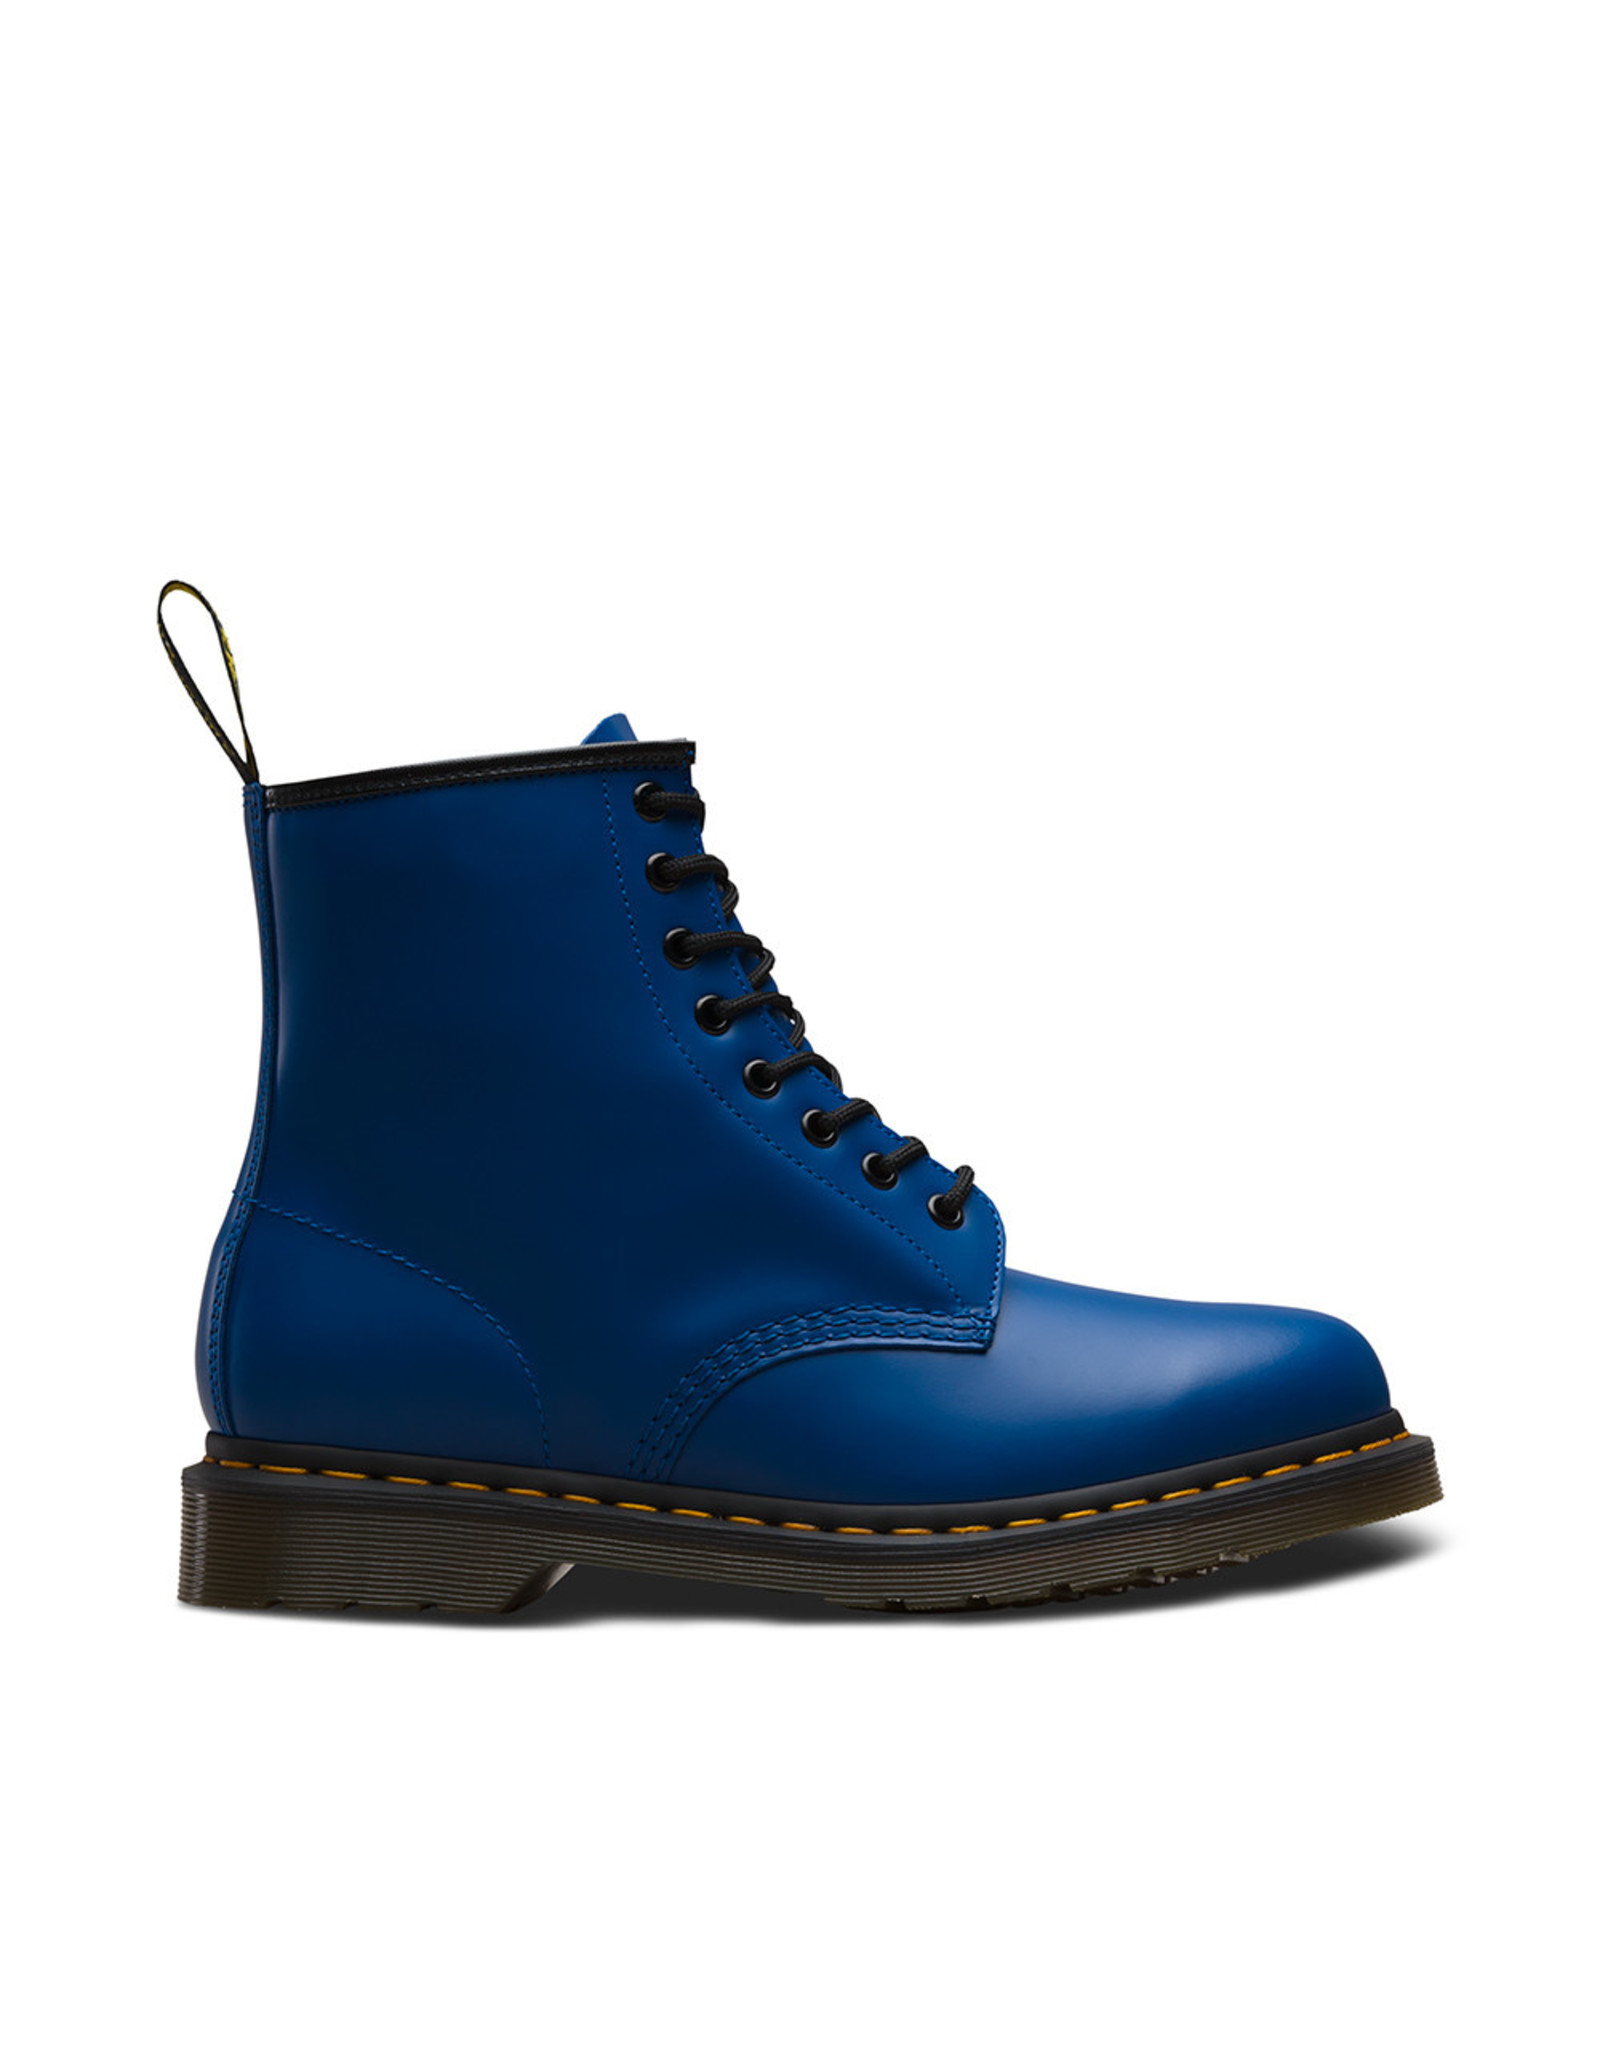 DR. MARTENS 1460 SMOOTH BLUE 815BLU-R24614400